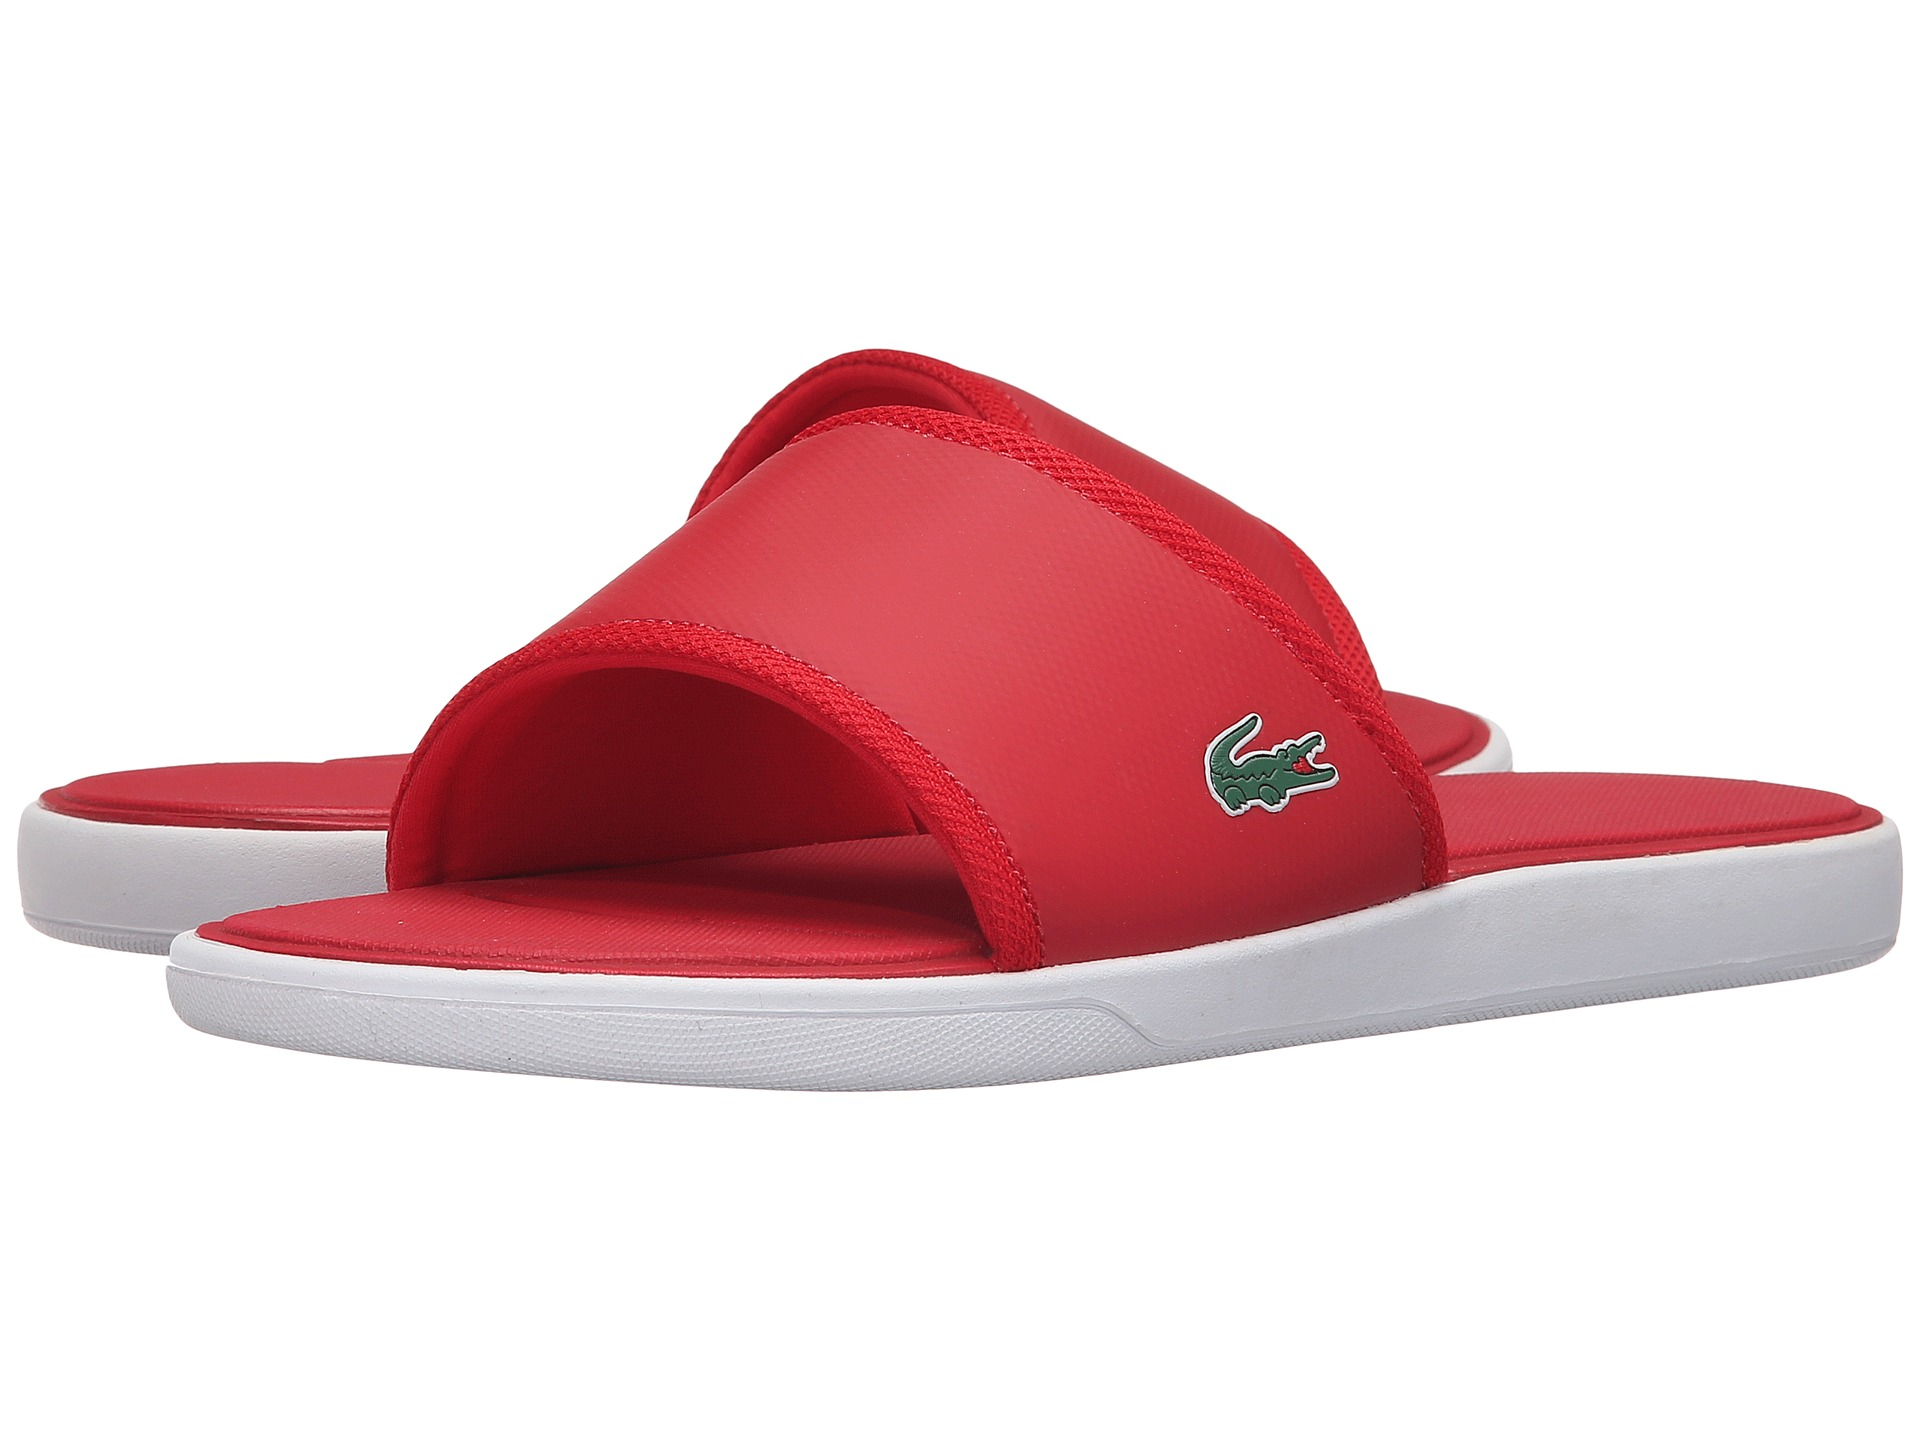 2ca928f2789722 Lyst - Lacoste L.30 Slide Sport Spm in Red for Men